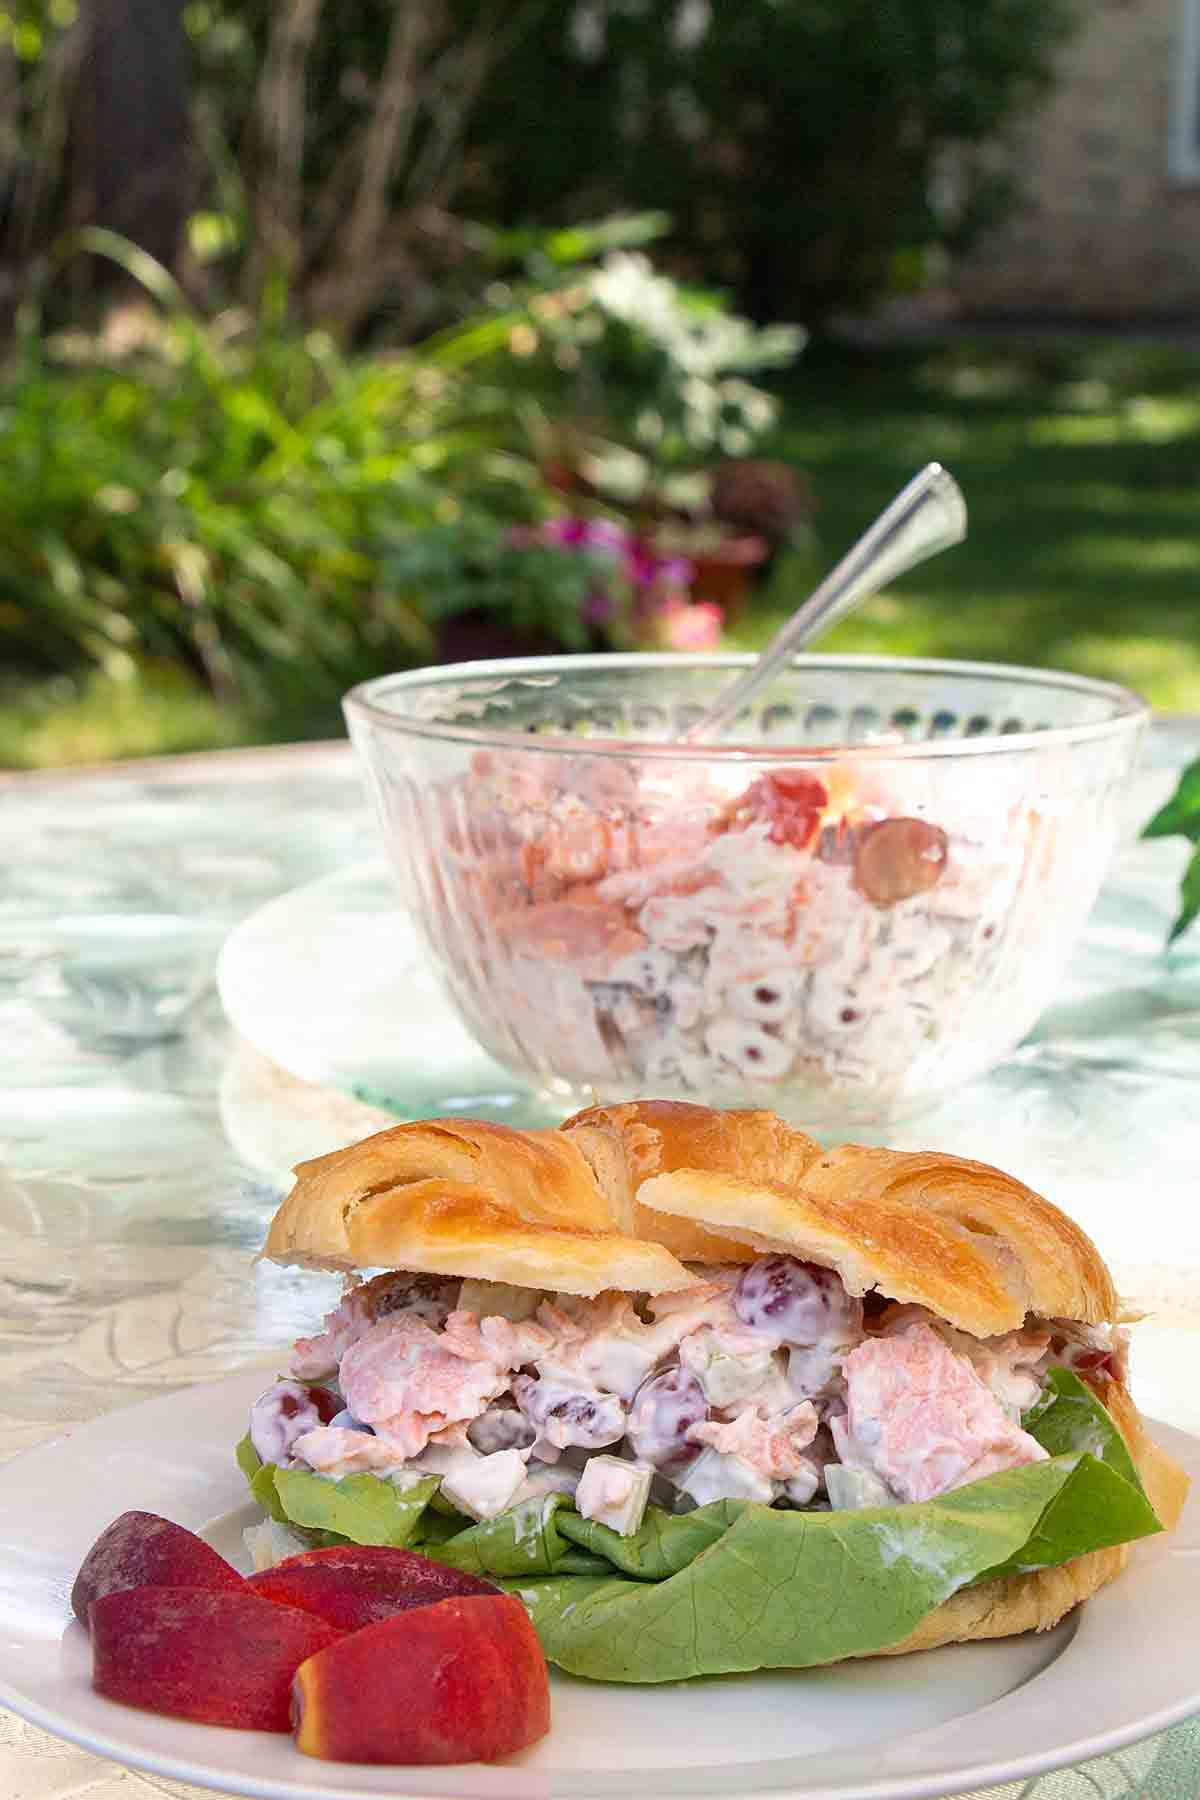 Salmon Salad with Grapes & Pecans updates a classic chicken salad. Serve as a sandwich or salad for lunch, brunch, shower or dinner.